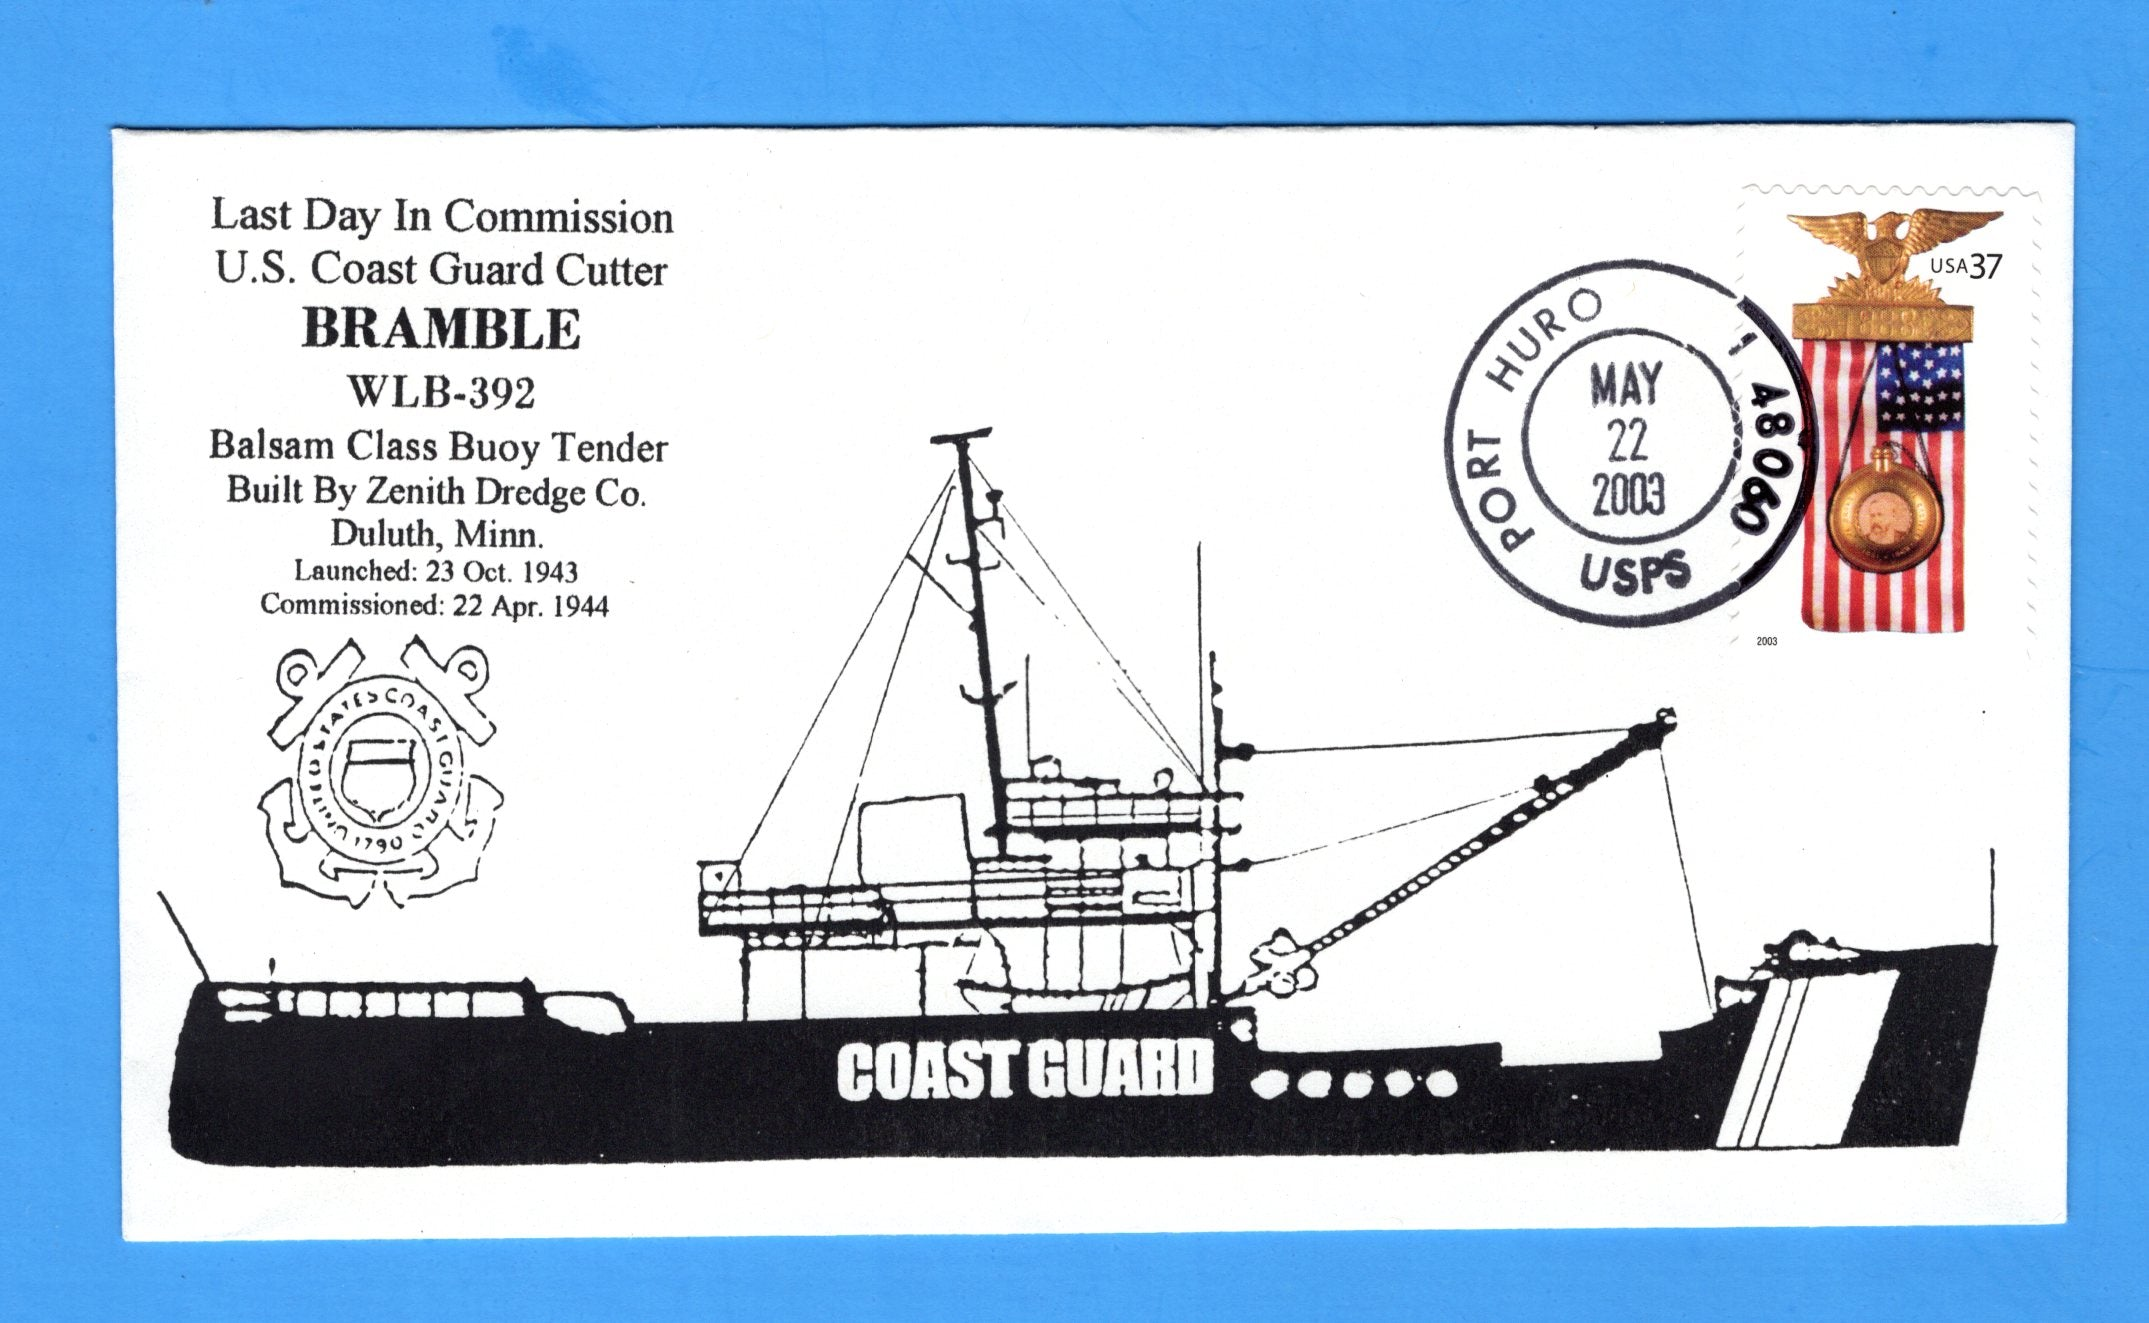 USCGC Bramble WLB-392 Last Day in Commission May 22, 2003 - Hand Drawn and Colored Cachet by Bill Everett